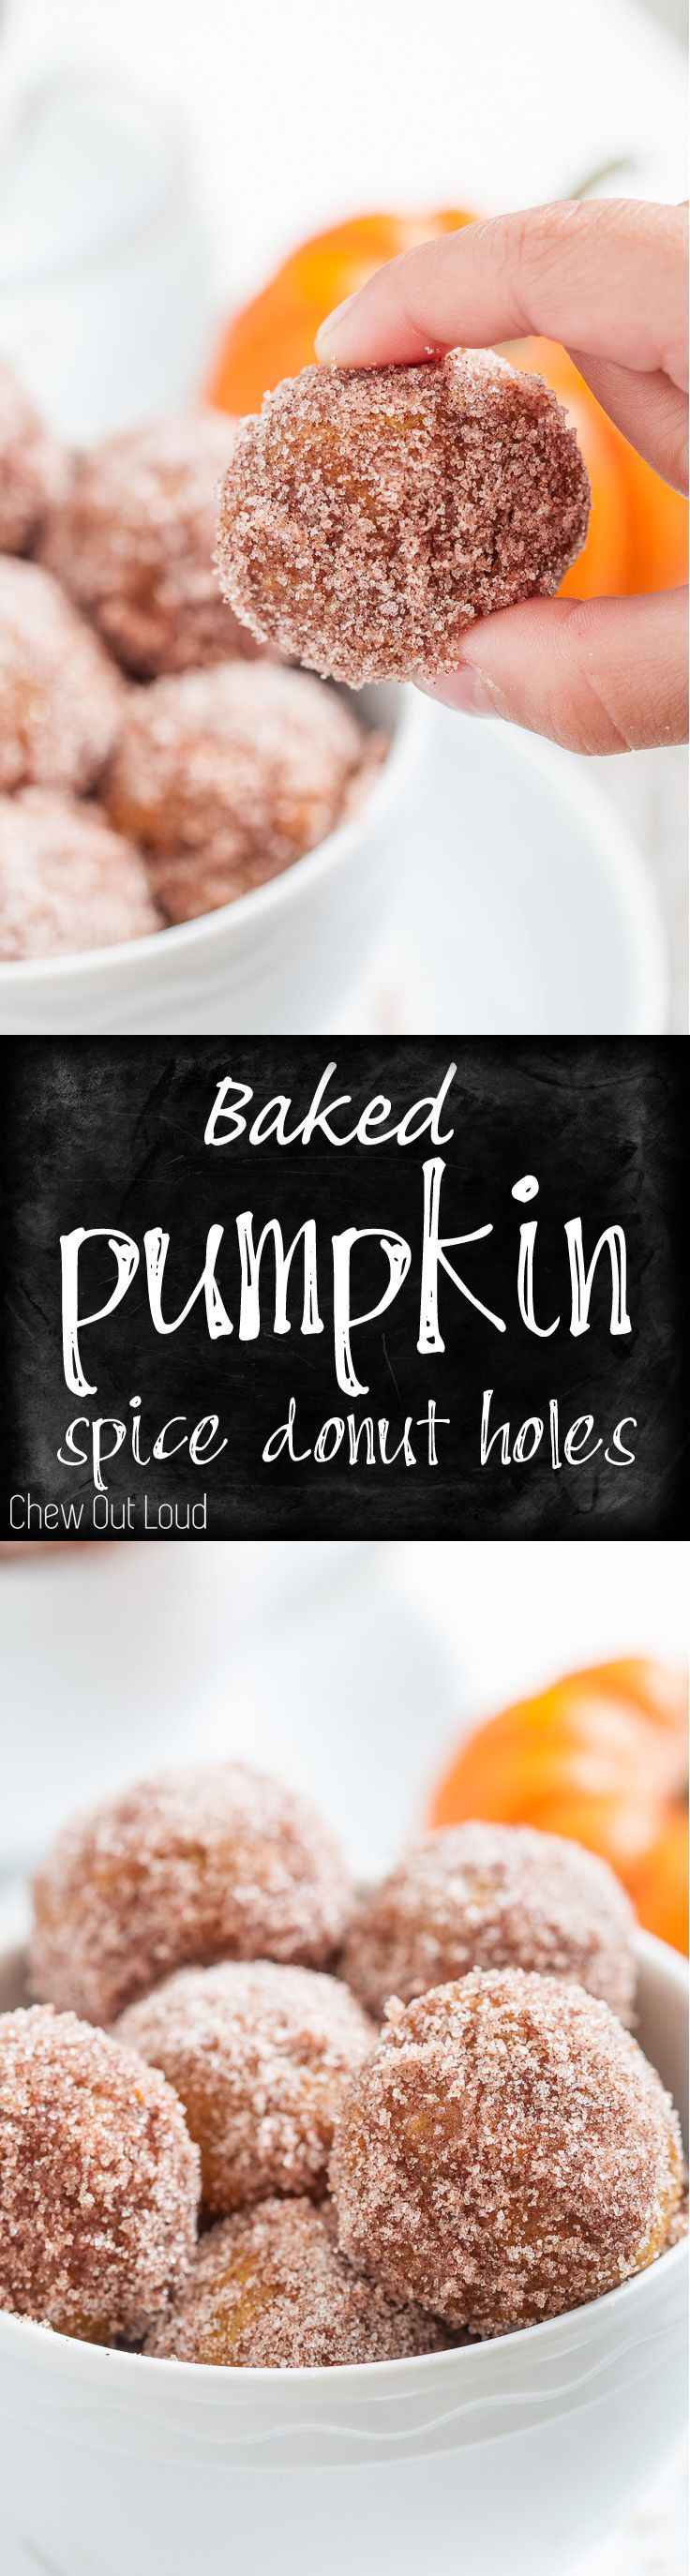 The perfect fall fun treat! Delicious for breakfast,  brunch, or snack. Baked, not fried. A fall favorite. #pumpkin #donut #breakfast